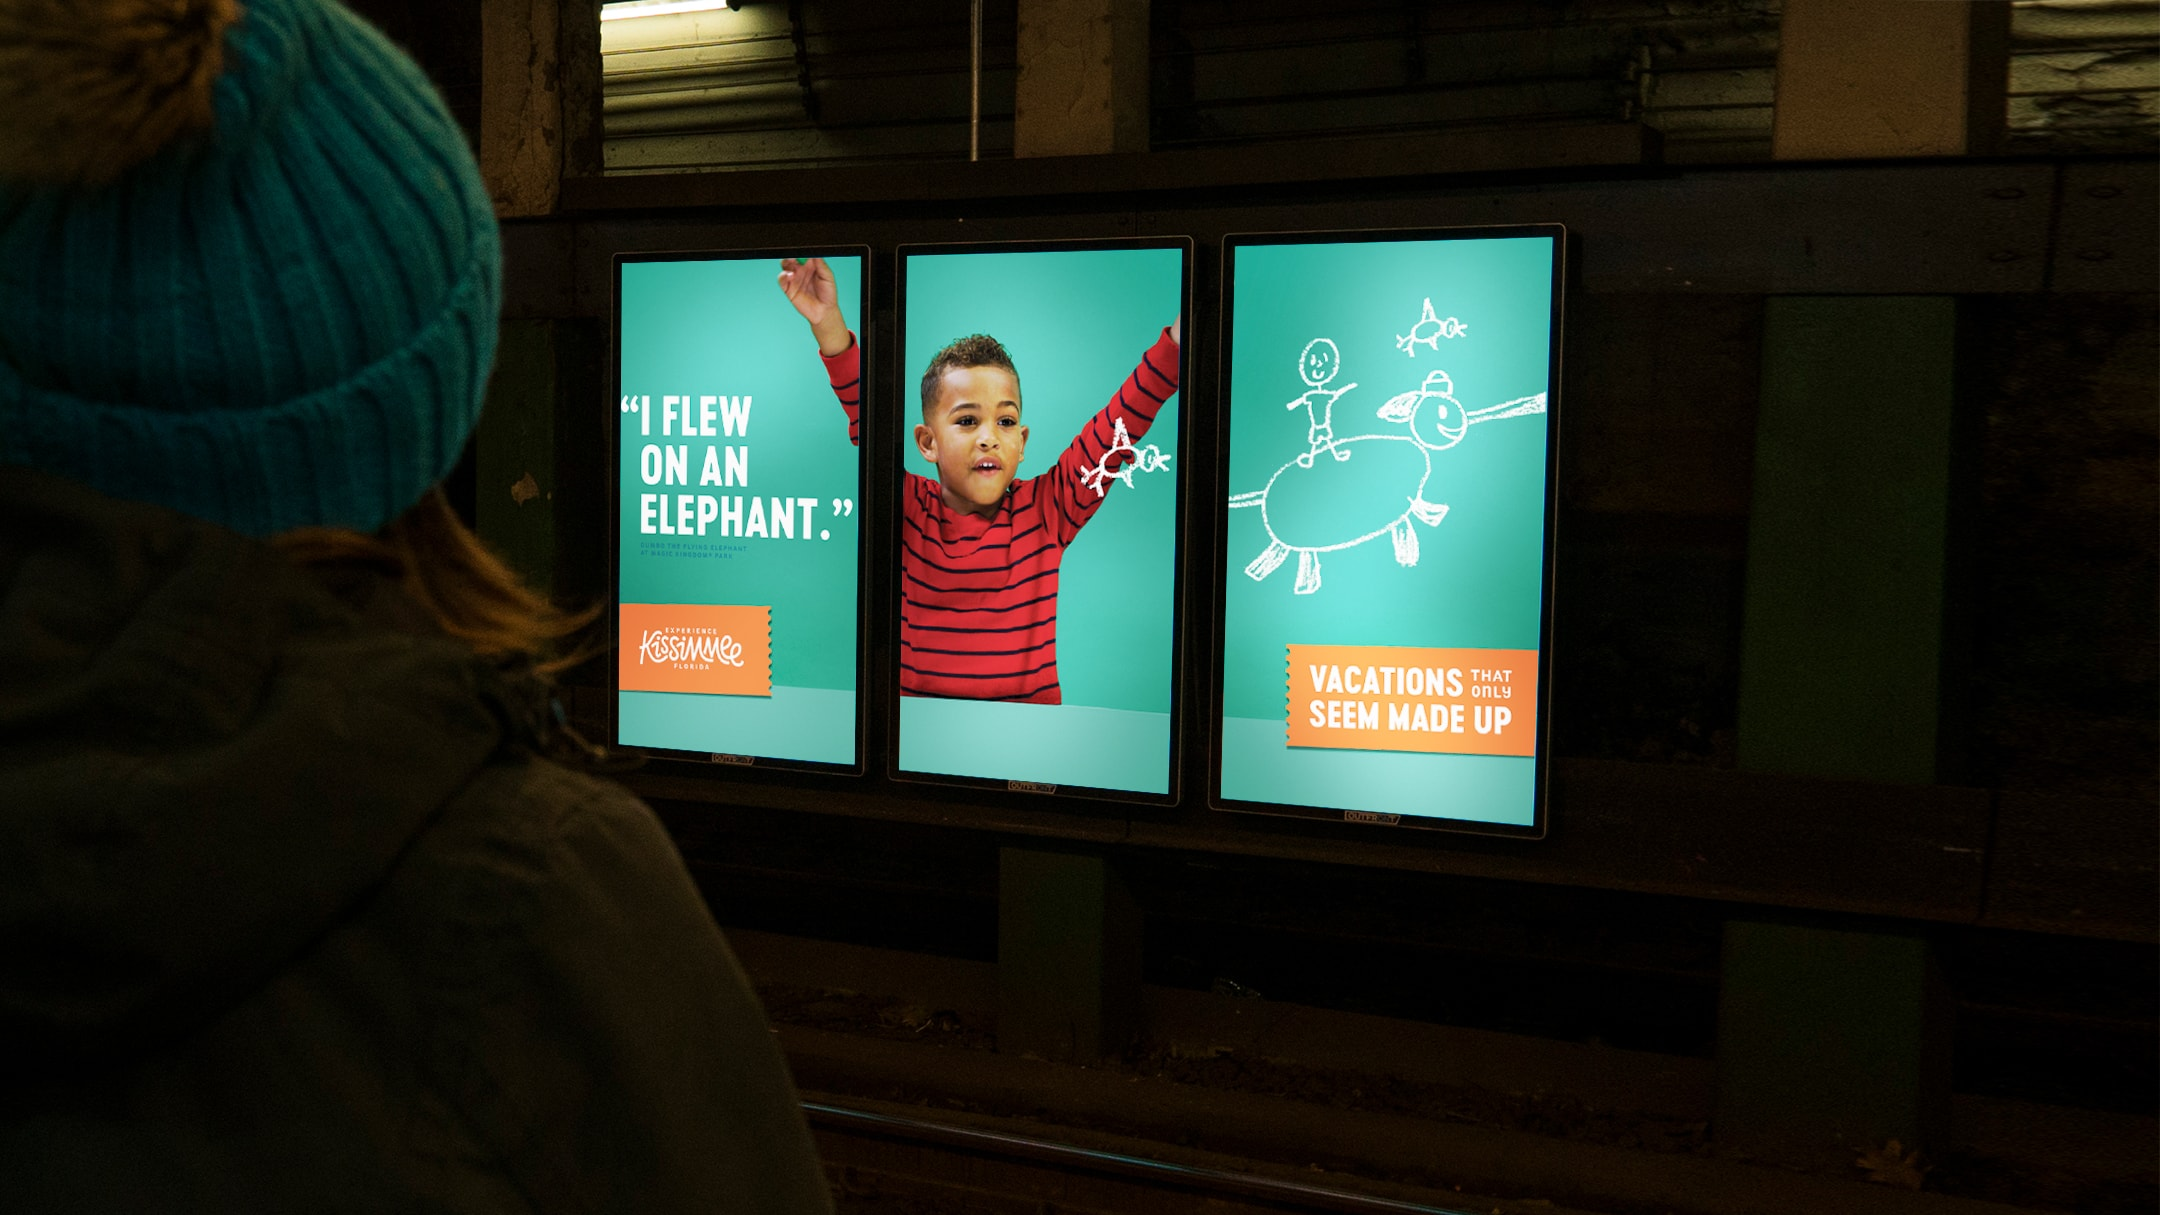 Example of our creative campaign and media planning for Experience Kissimmee's winter campaign. This ad was featured in a subway station.